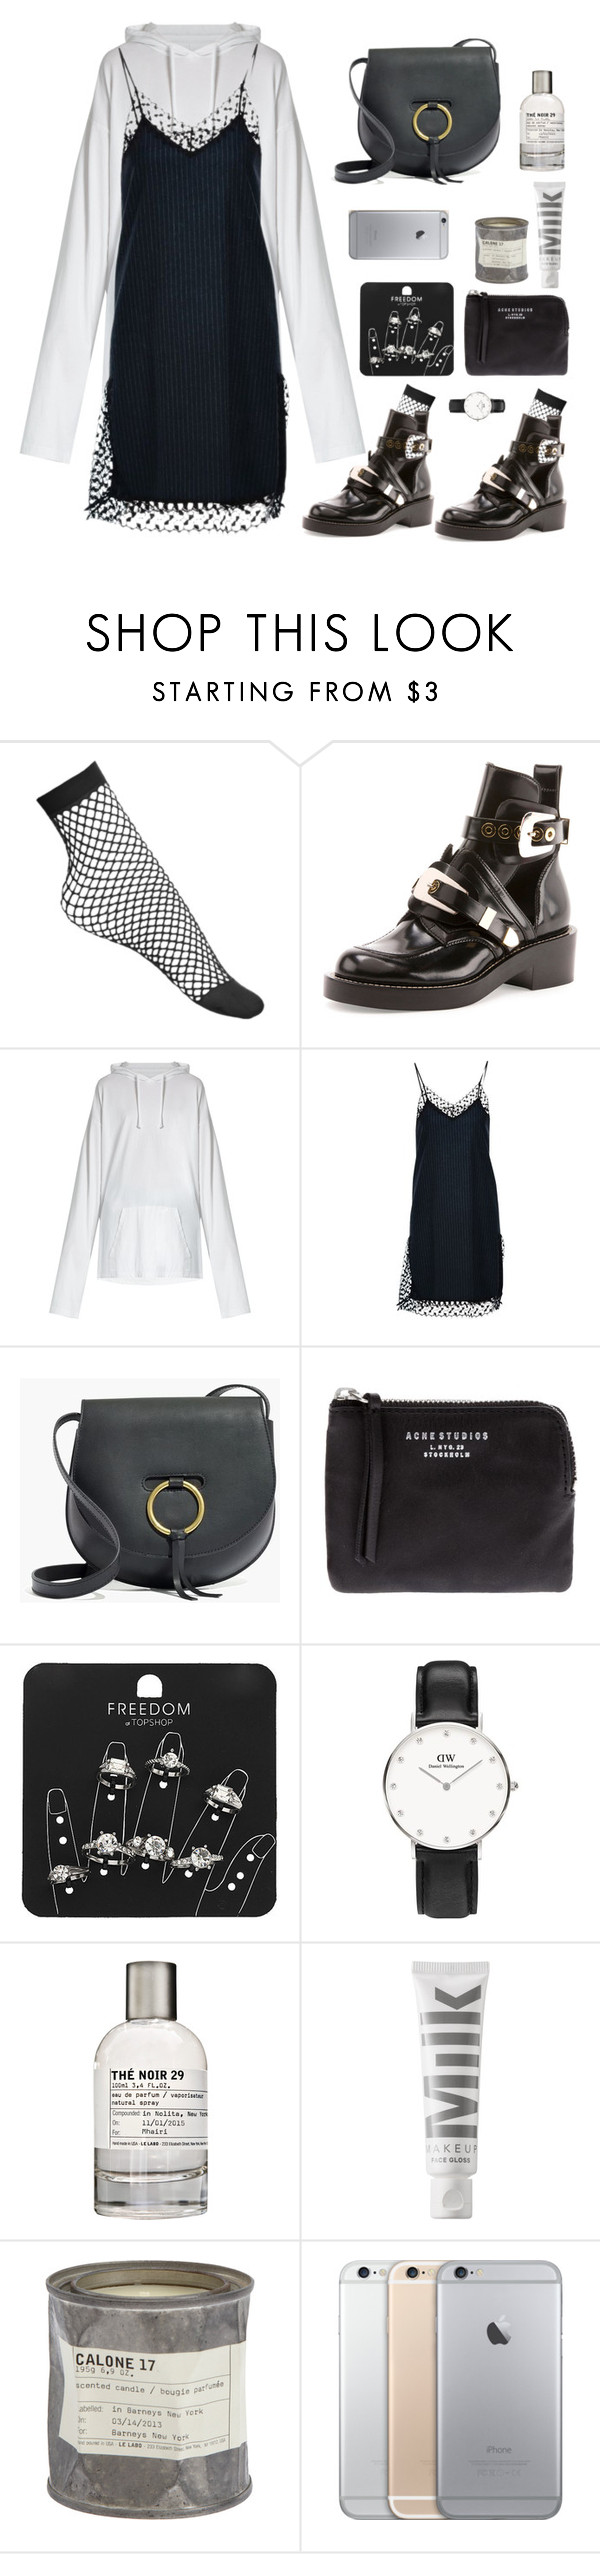 """""""long"""" by millicent4 ❤ liked on Polyvore featuring Balenciaga, Vetements, Erika Cavallini Semi-Couture, Madewell, Acne Studios, Topshop, Le Labo and MILK MAKEUP"""